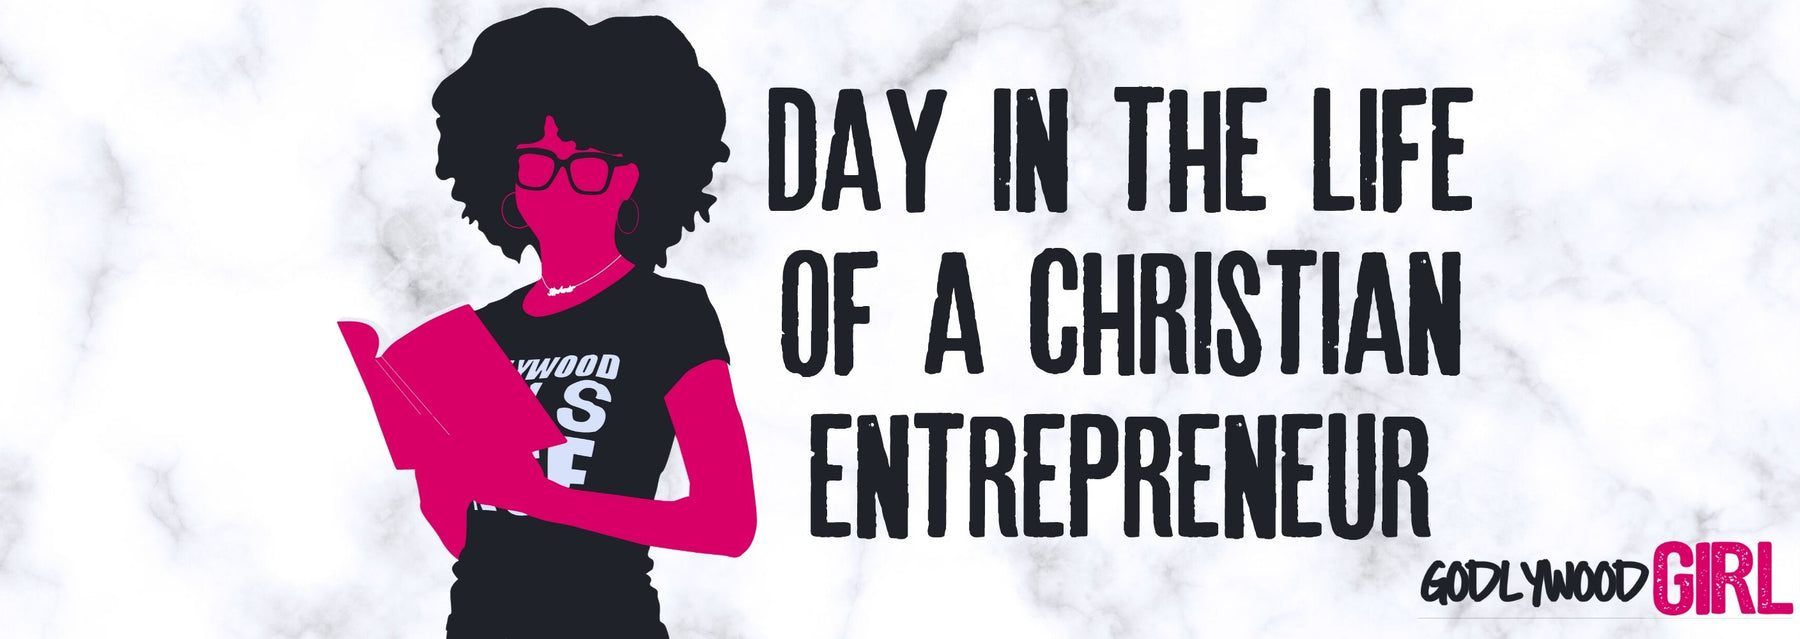 Day In The Life Of A Christian Entrepreneur Ep.24 | Day In The Life Of An Entrepreneur Part 2 Trying & Failing